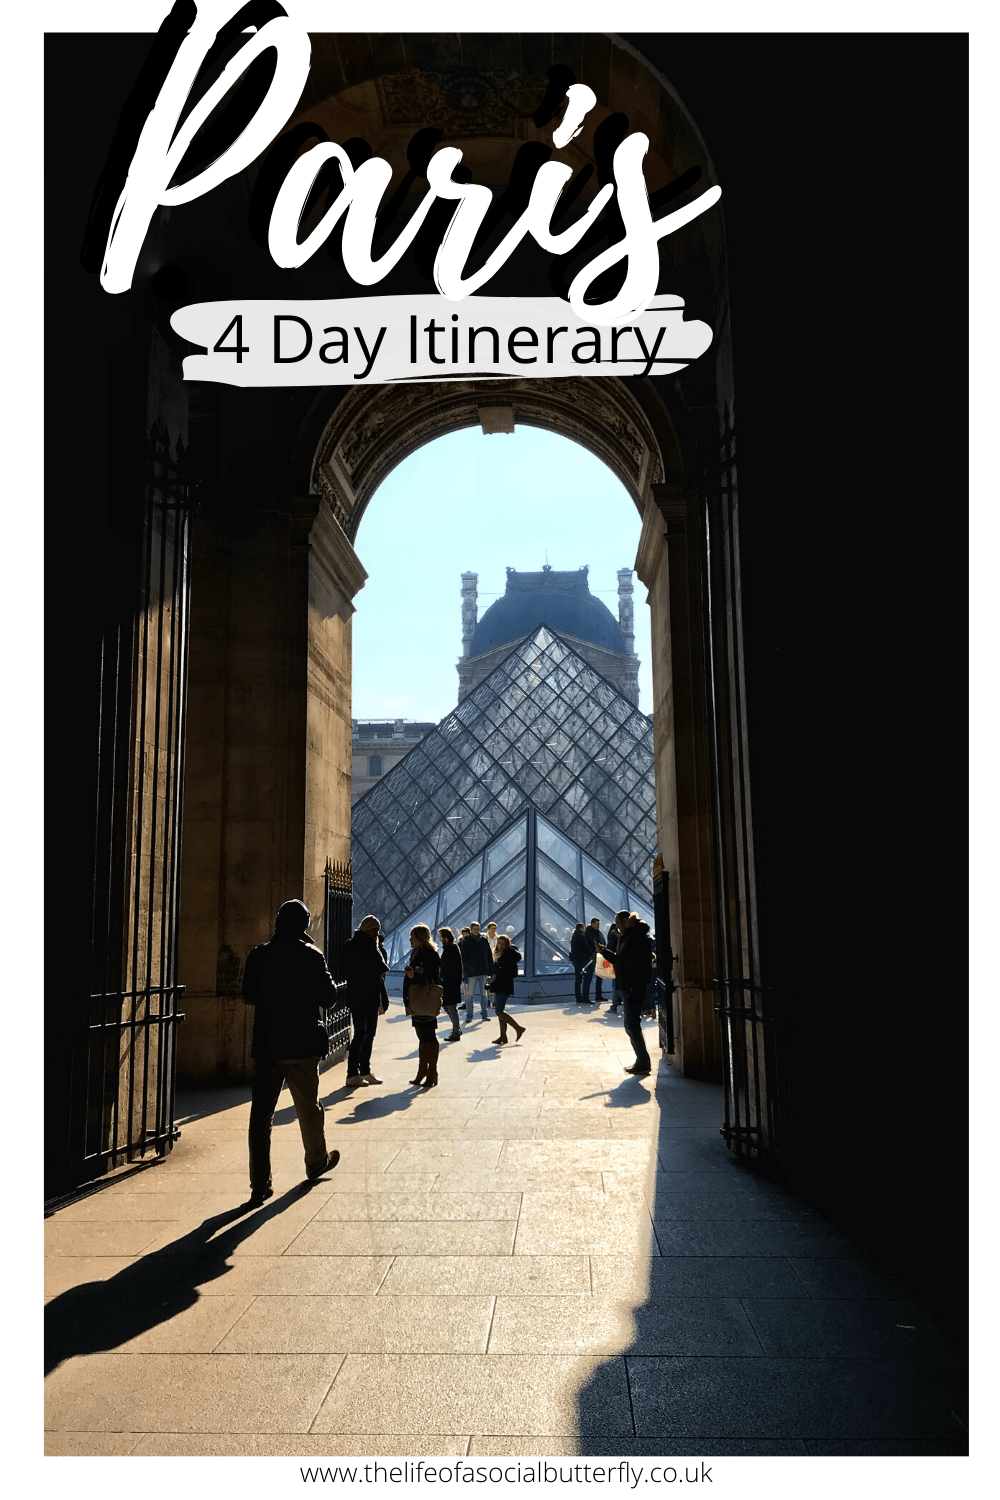 Visiting Paris for the first time? Then you'll want to know what to do in Paris in 4 days, where to eat in Paris and all the things to do in the city of light & love! Read my Paris 4 days itinerary for first timers for all my Paris travel tips, including how to stay safe in Paris! #whattoseeinparis #paristravelguide #weekendinparis #parisfirsttime